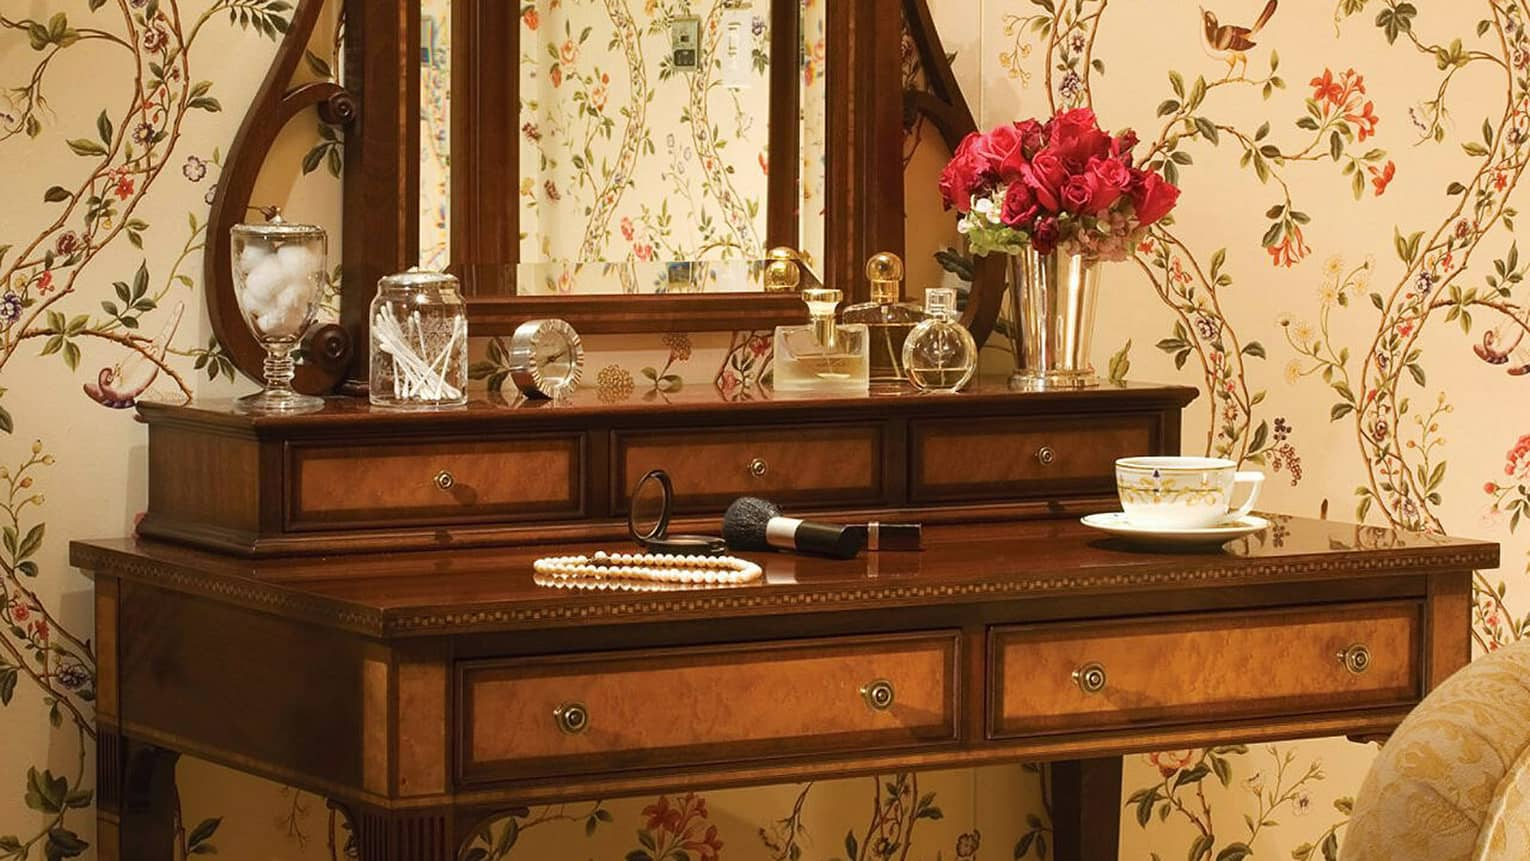 Antique-style wood vanity, mirror with perfume bottles, make-up, pearl necklace